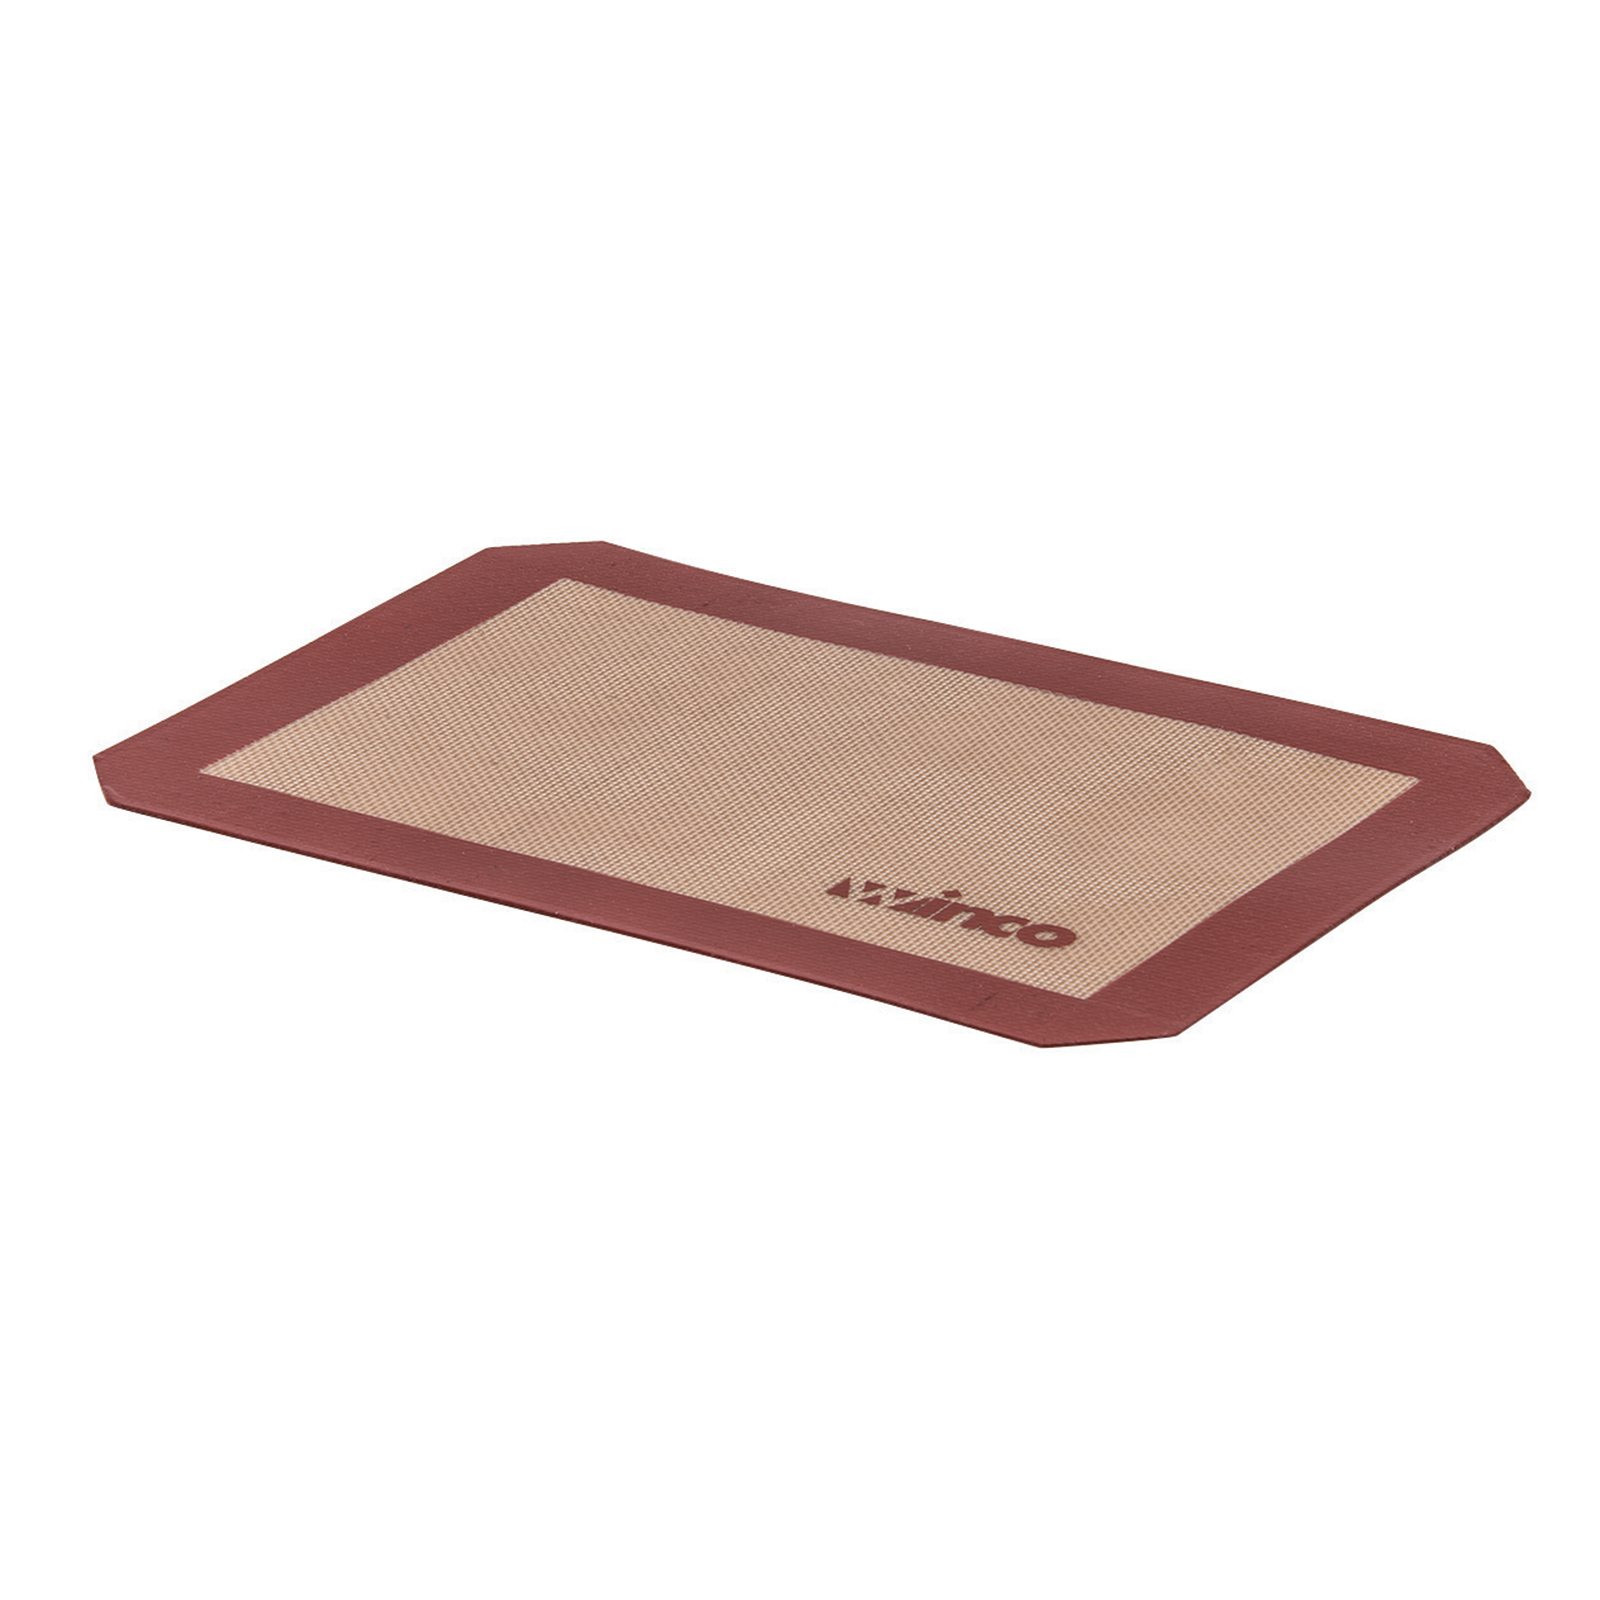 1800-19 Winco SBS-24 baking mat